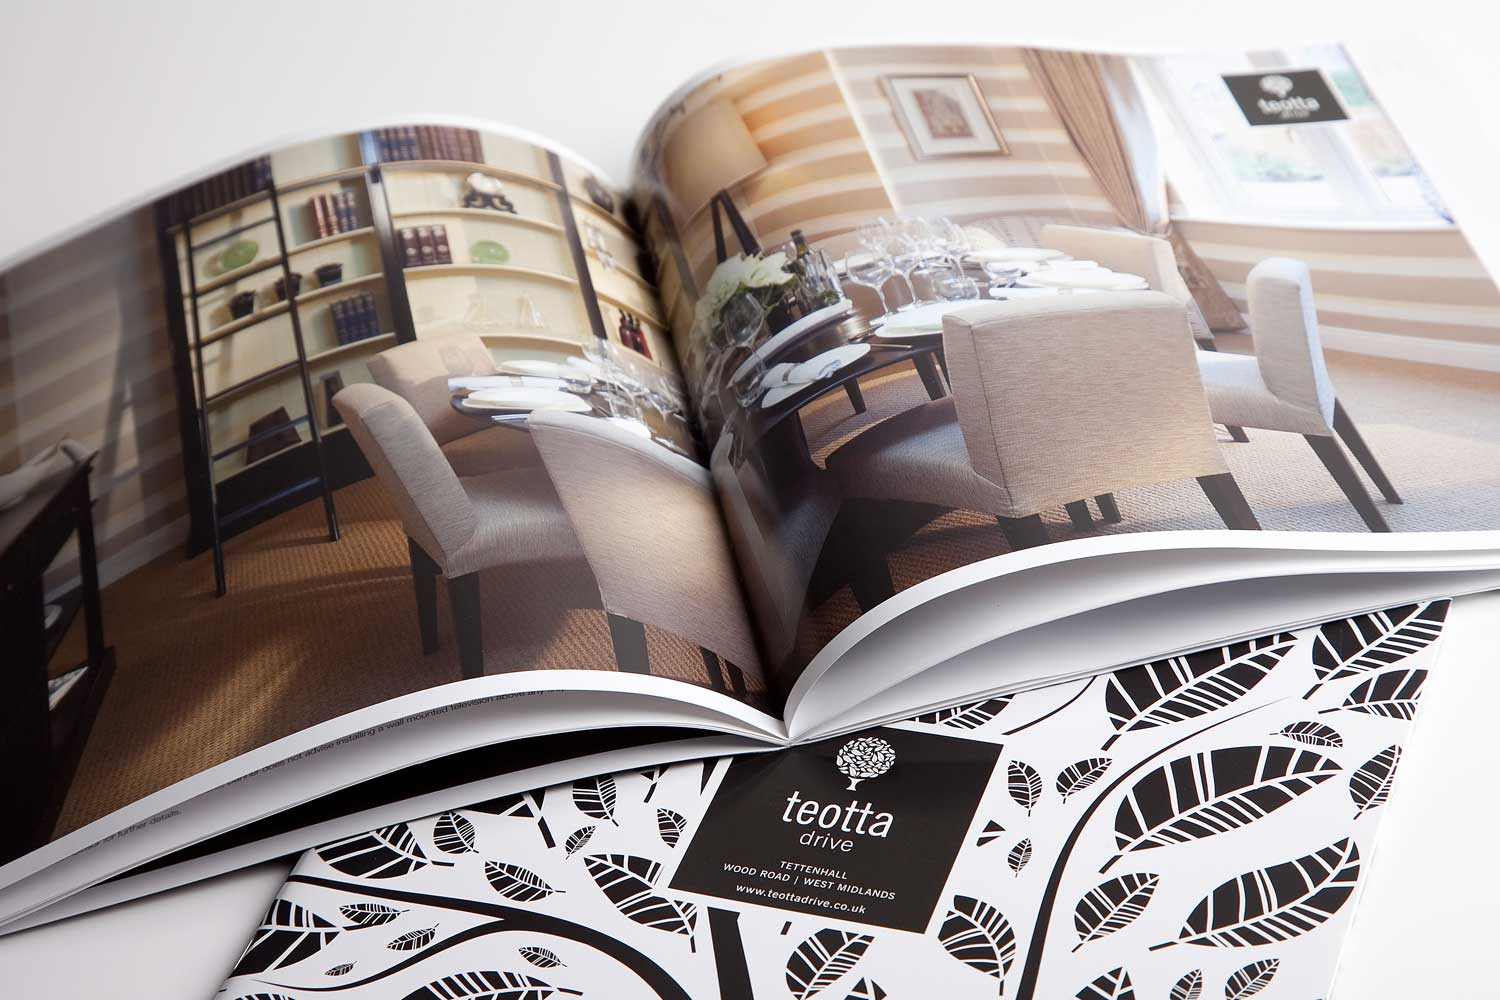 property-brochure-design-featuring-stylised-leaves-on-the-cover.jpg